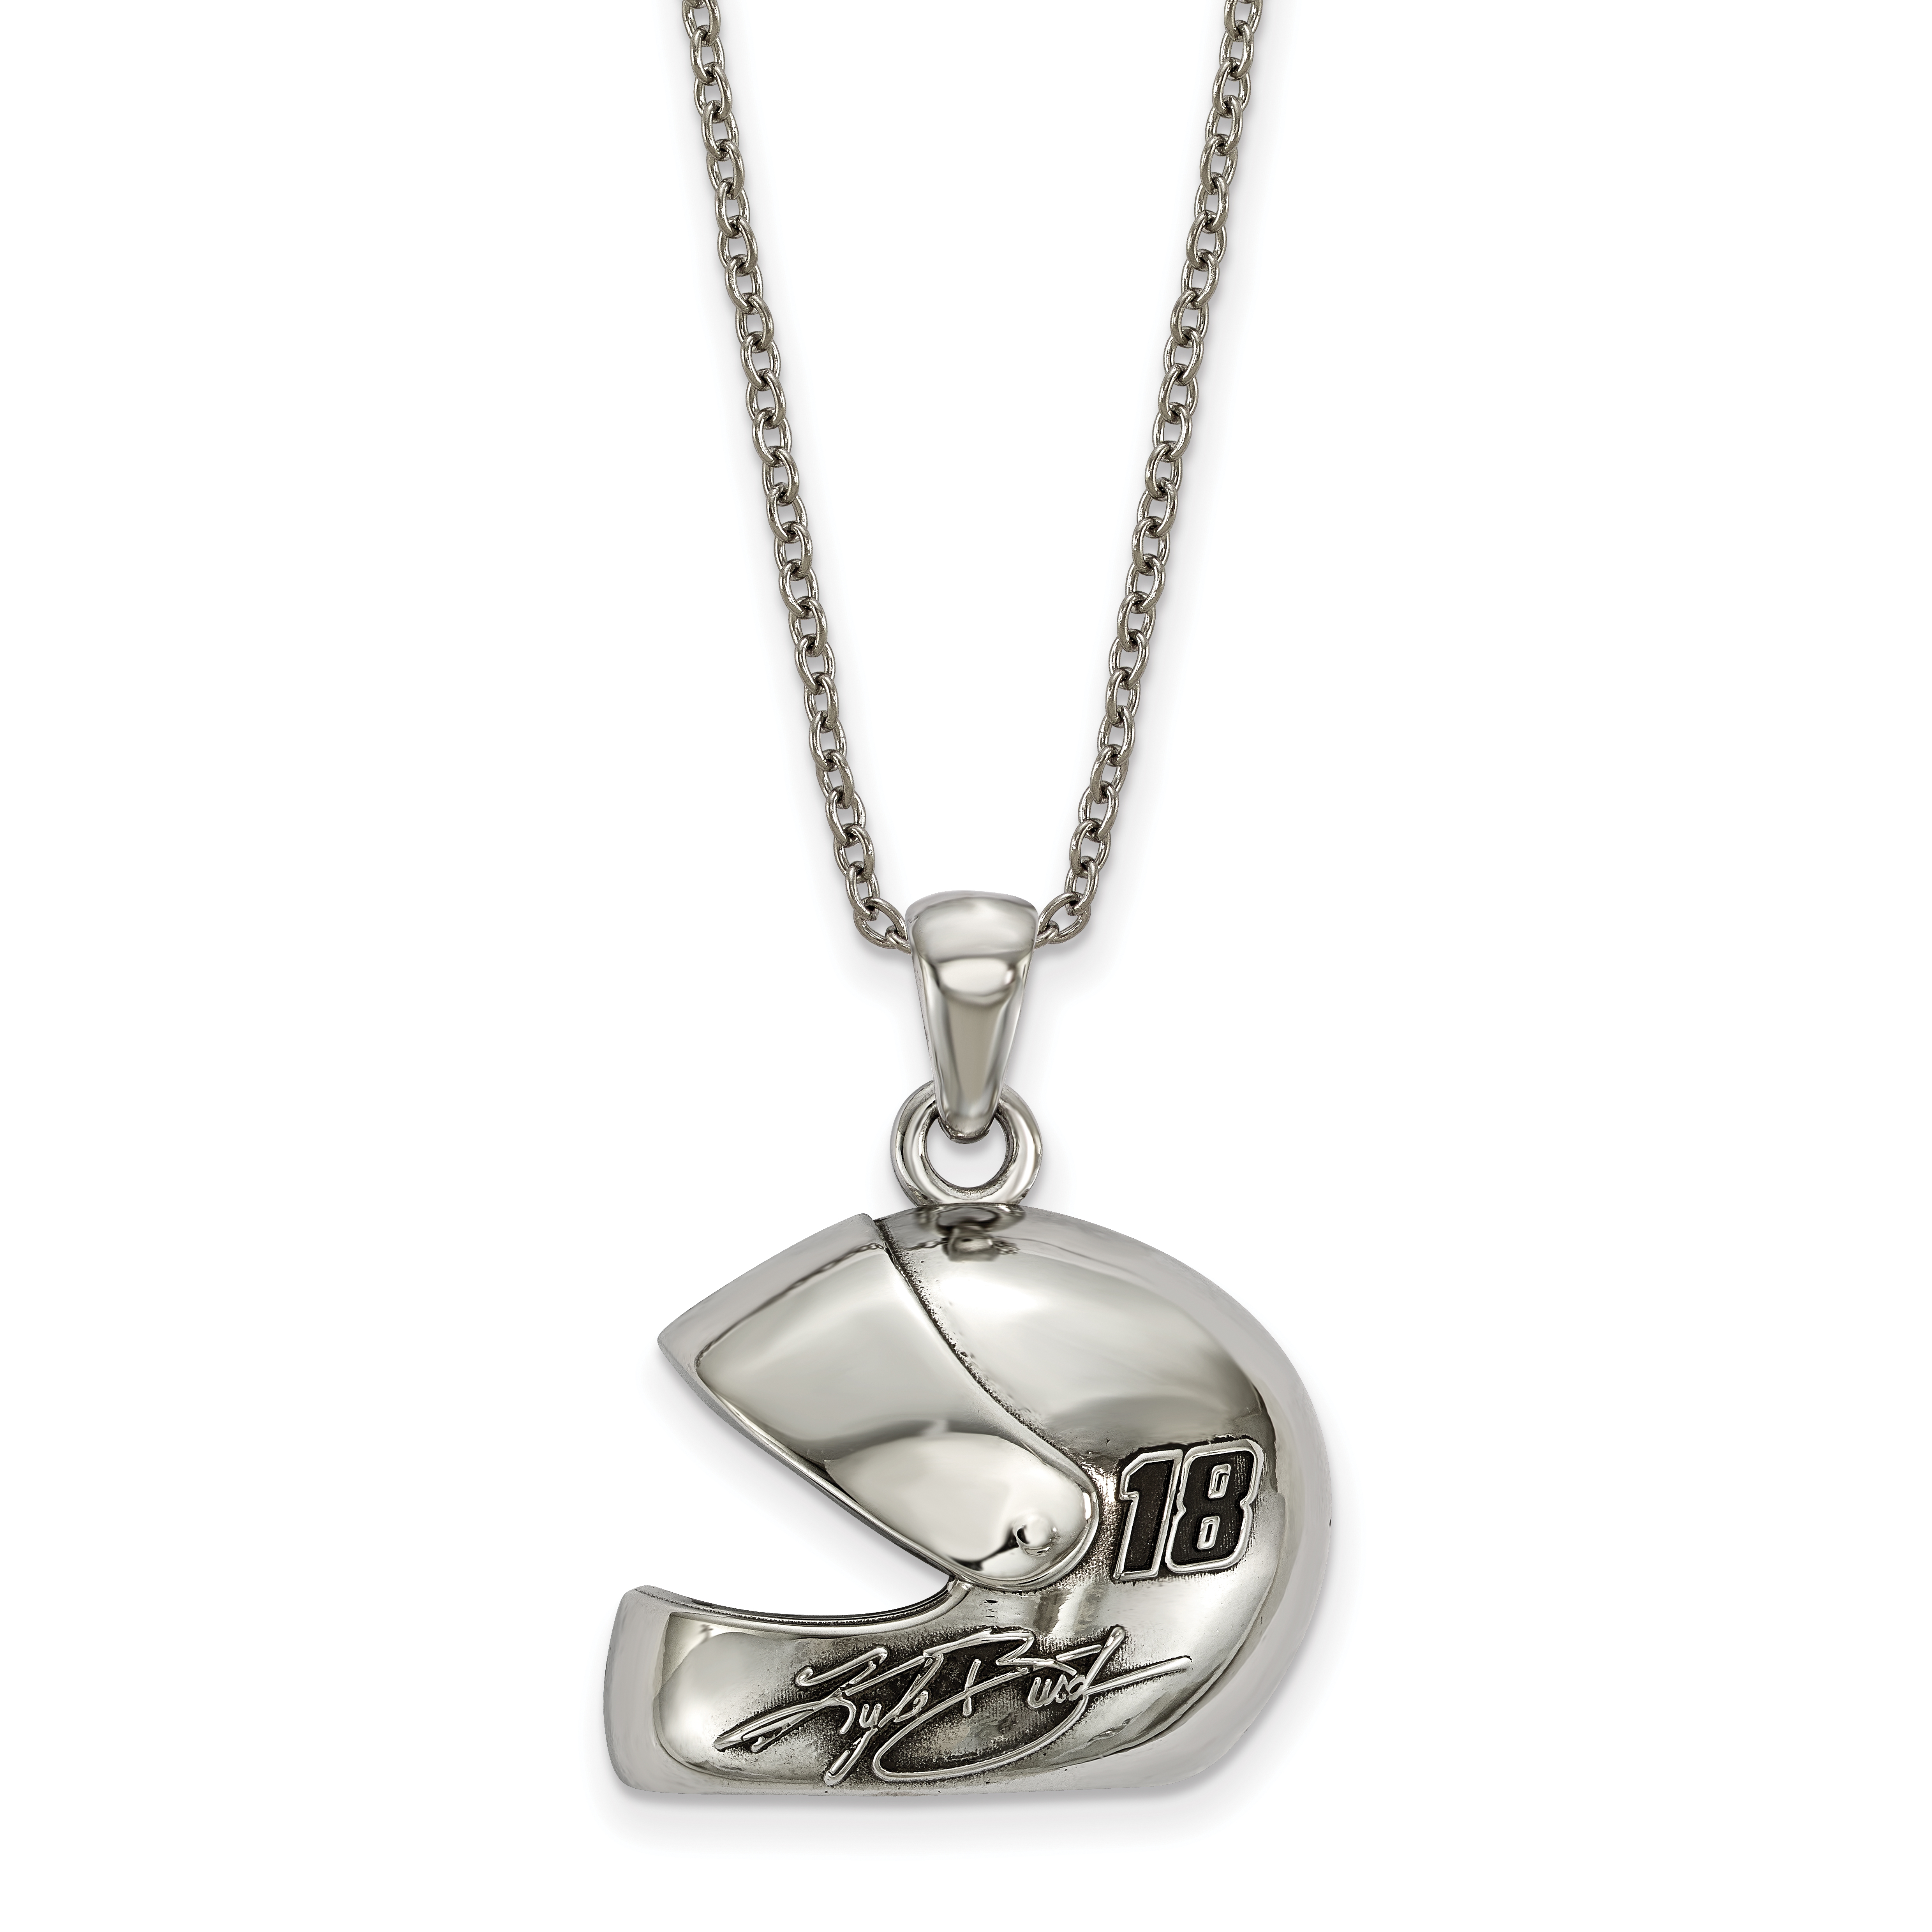 NASCAR 18 Kyle Busch STAINLESS HEART KEY 1 with DRIVER #18 EARRINGS